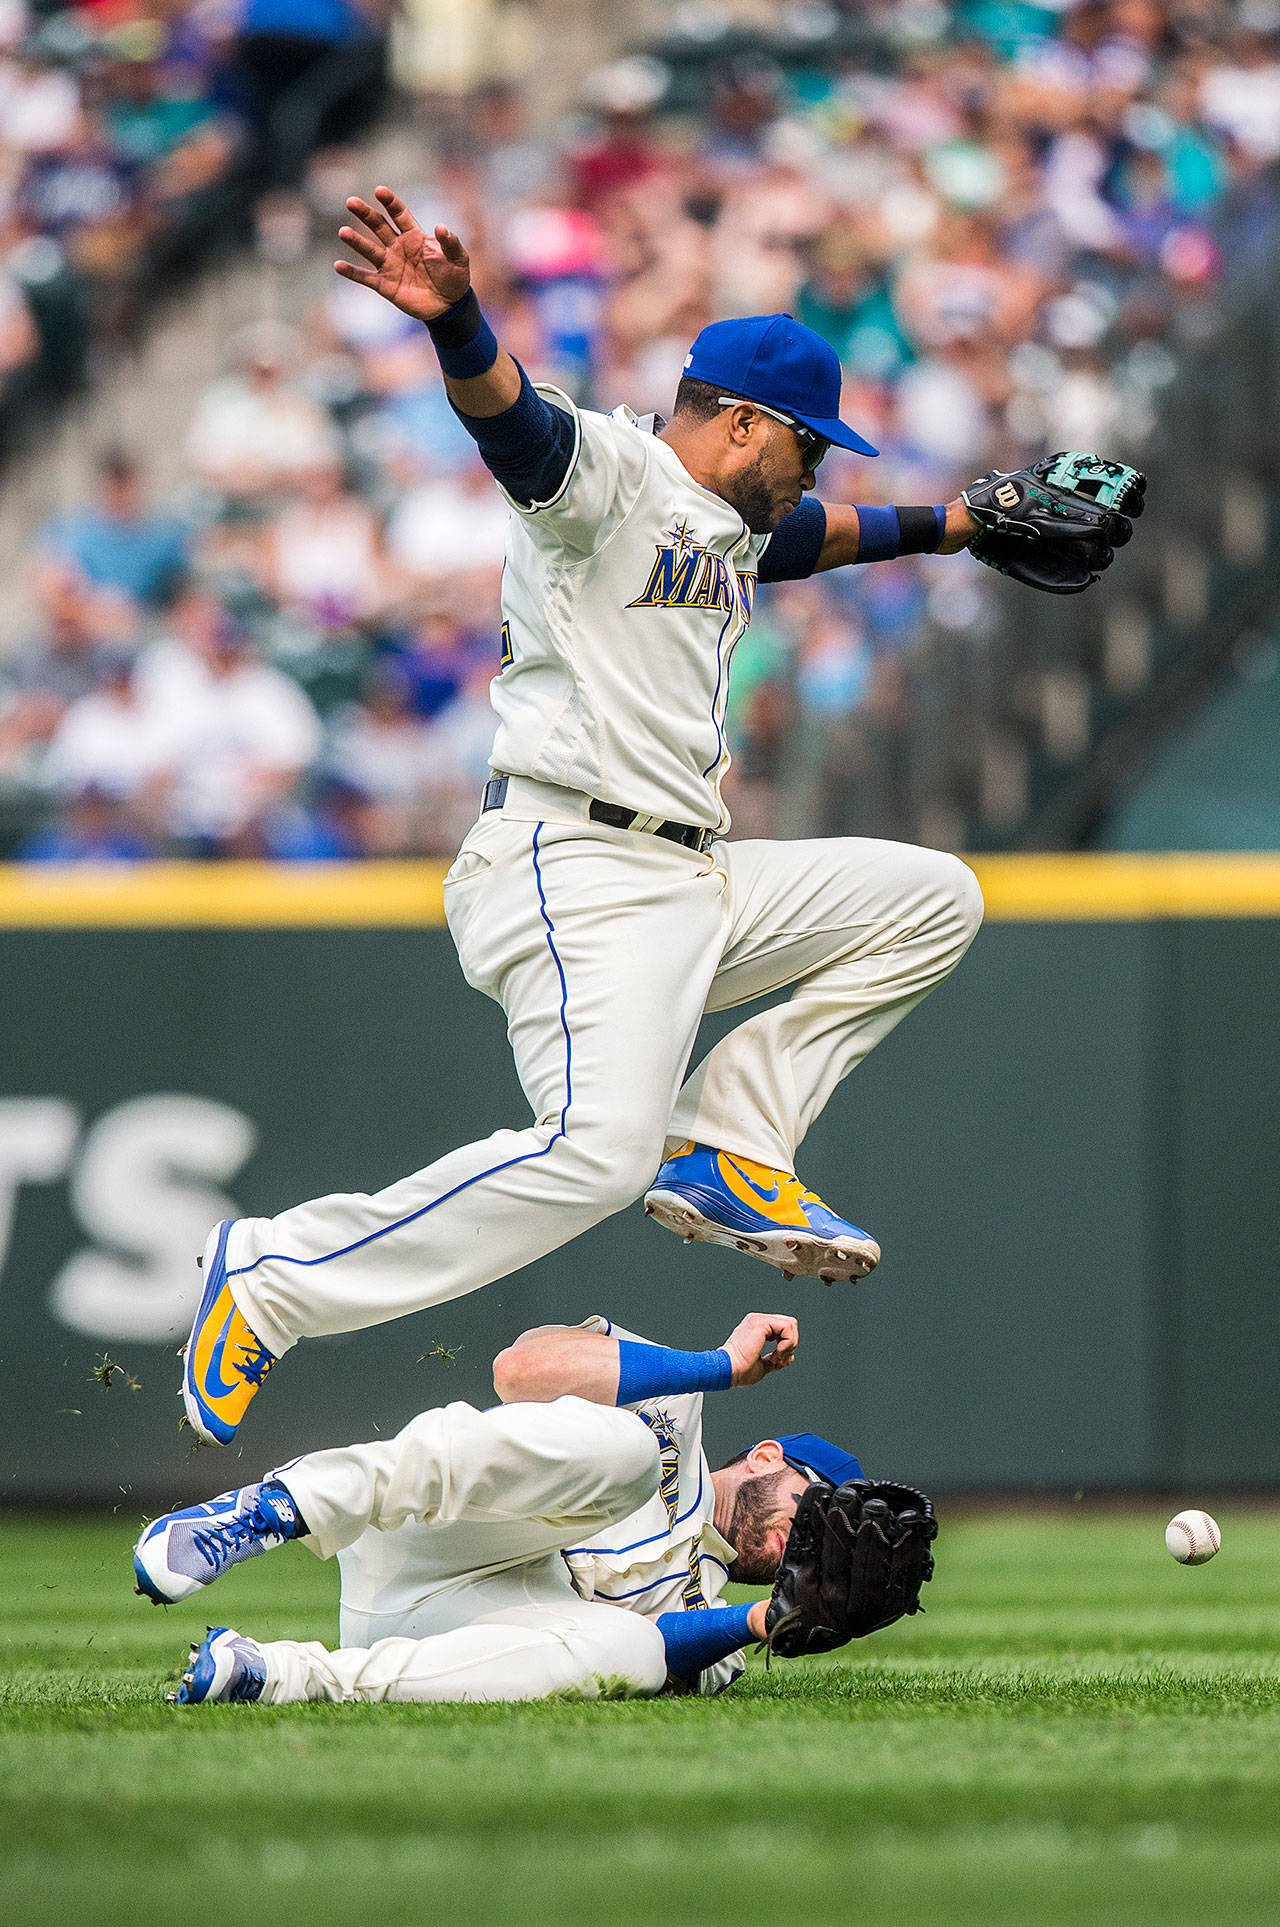 Seattle second baseman Robinson Cano jumps over teammate Mitch Haniger during Sunday's game against the Los Angeles Dodgers at Safeco Field in Seattle. The Mariners lost to the Dodgers, 12-1. (Olivia Vanni / The Herald)